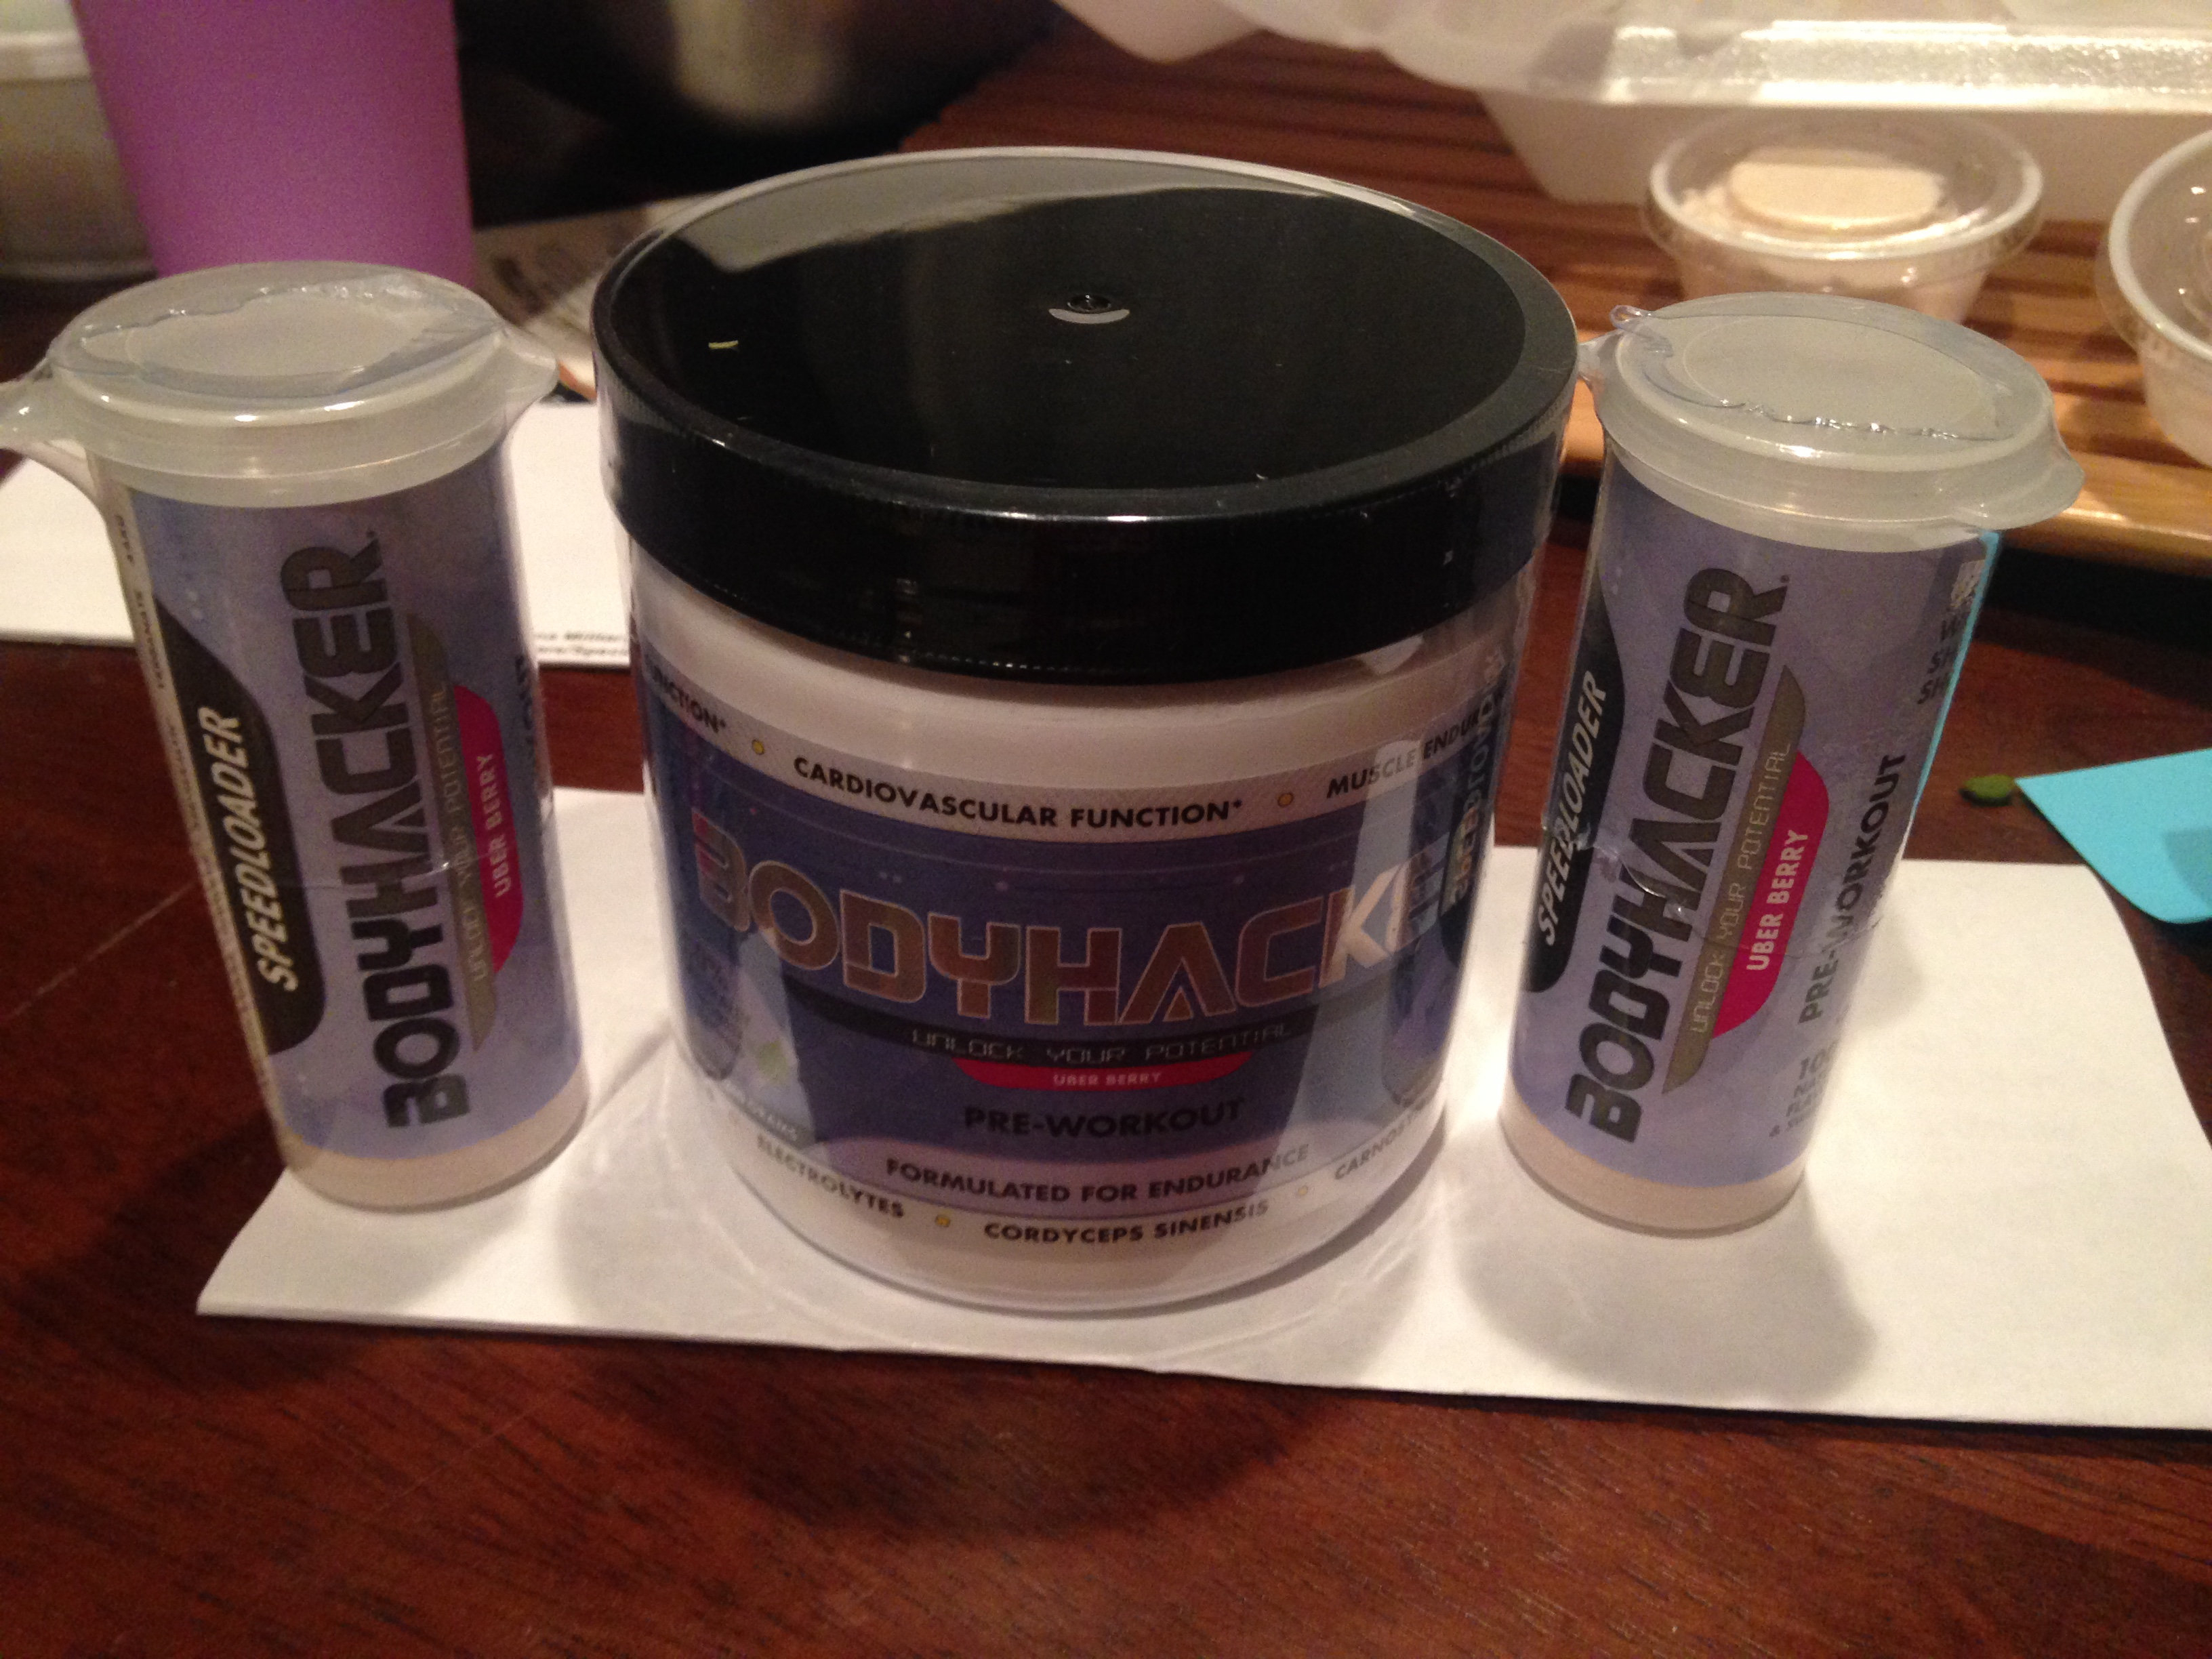 Full size container of Bodyhacker with two speed loaders.  Each speed loader has one serving allowing you to drink your pre-workout on the go quickly when traveling, pre-race or headed to the gym.